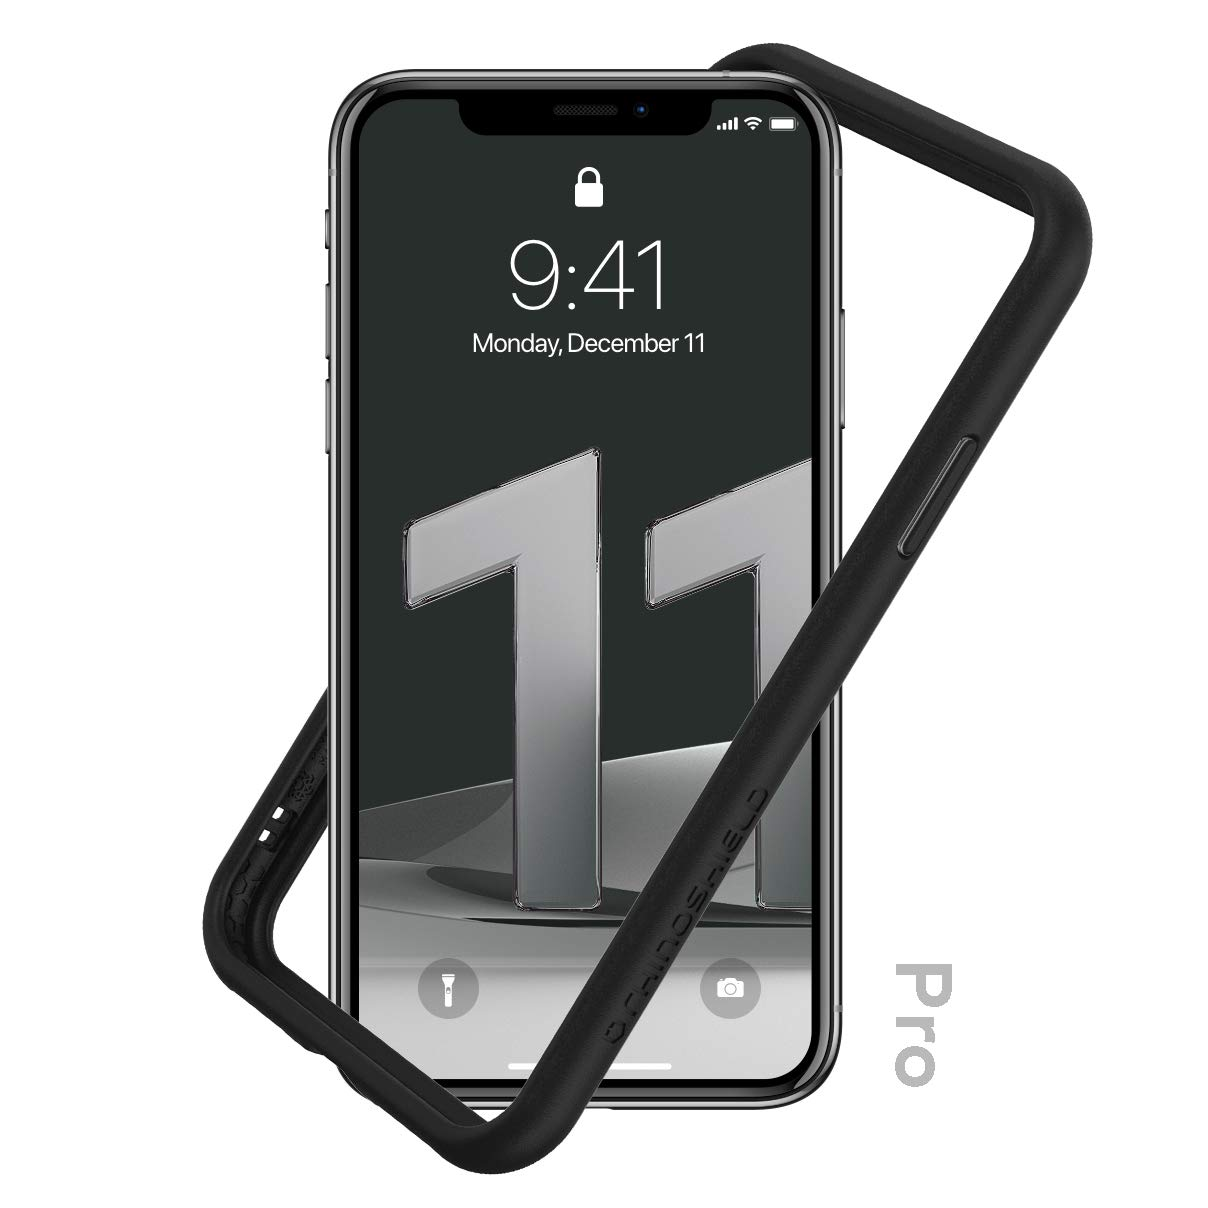 RhinoShield Bumper Case Compatible with [iPhone 11 Pro]   CrashGuard NX - Shock Absorbent Slim Design Protective Cover 3.5M / 11ft Drop Protection - Black